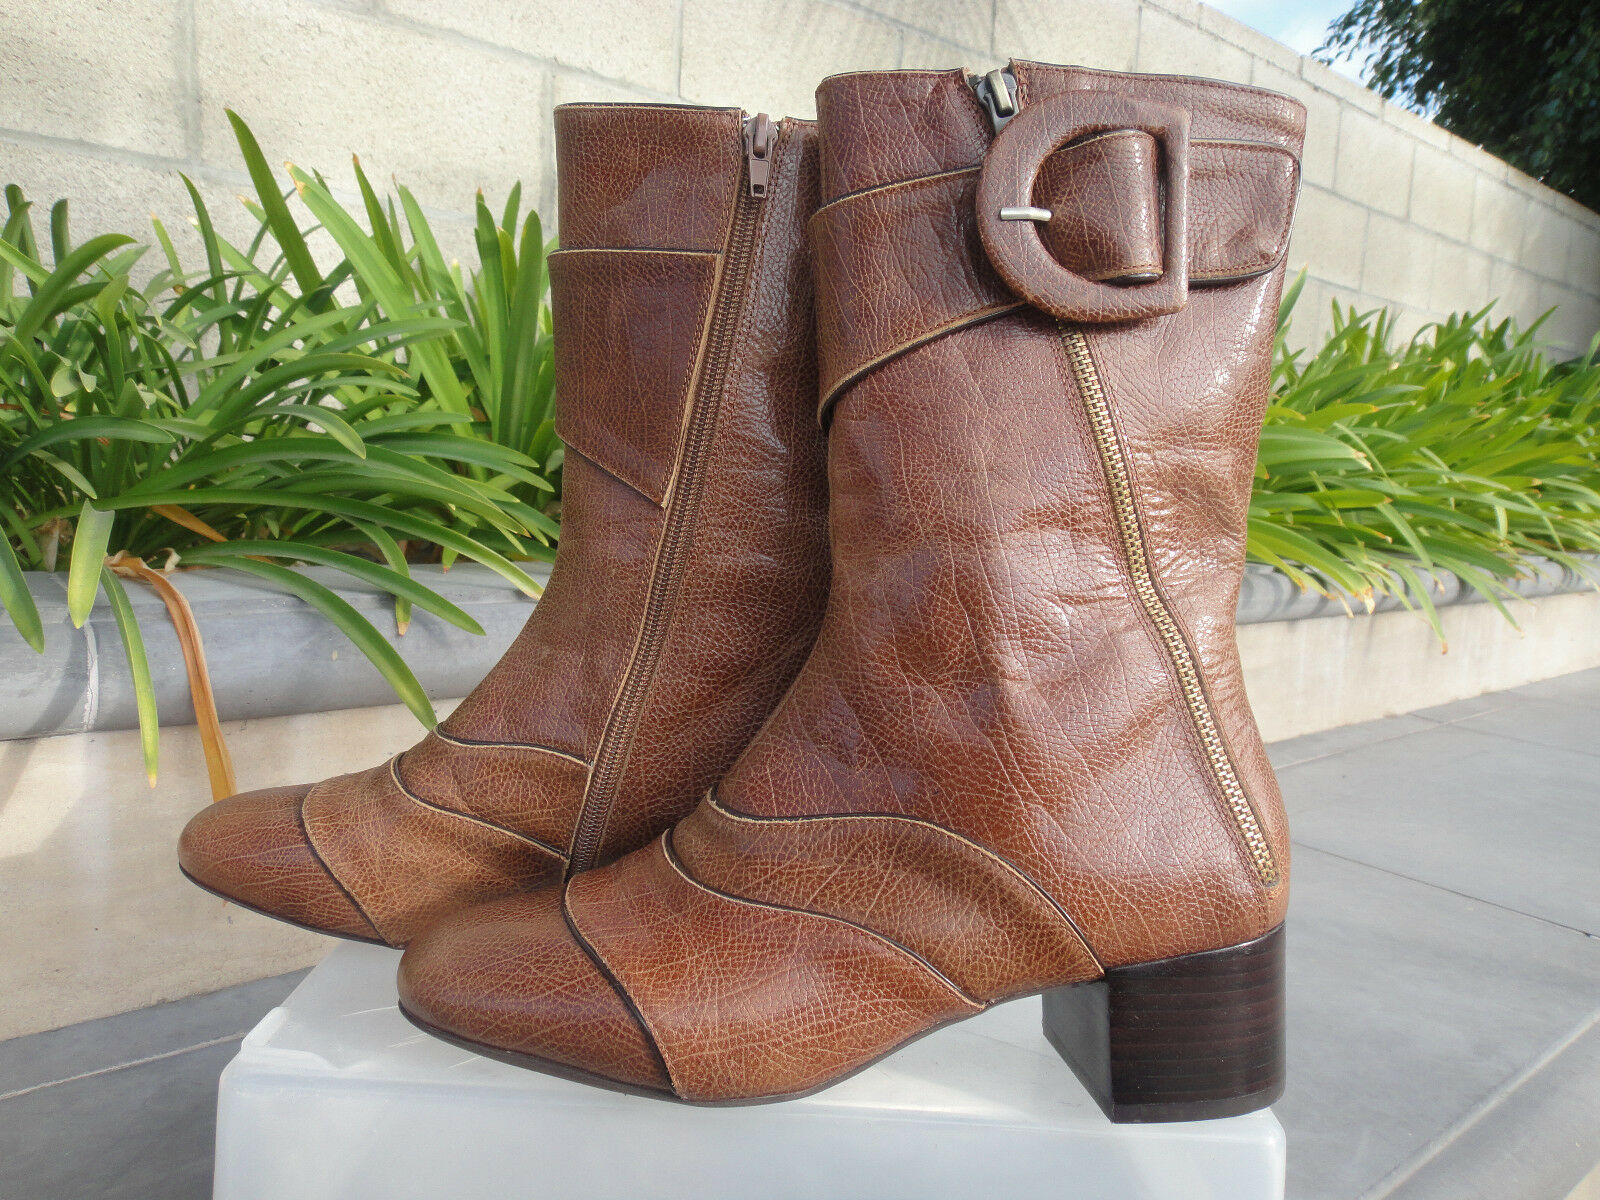 Jeffrey Campbell PHASMA Mid Calf Boots, Tan Pebble Leather, Choose 8M or 9M(SO)